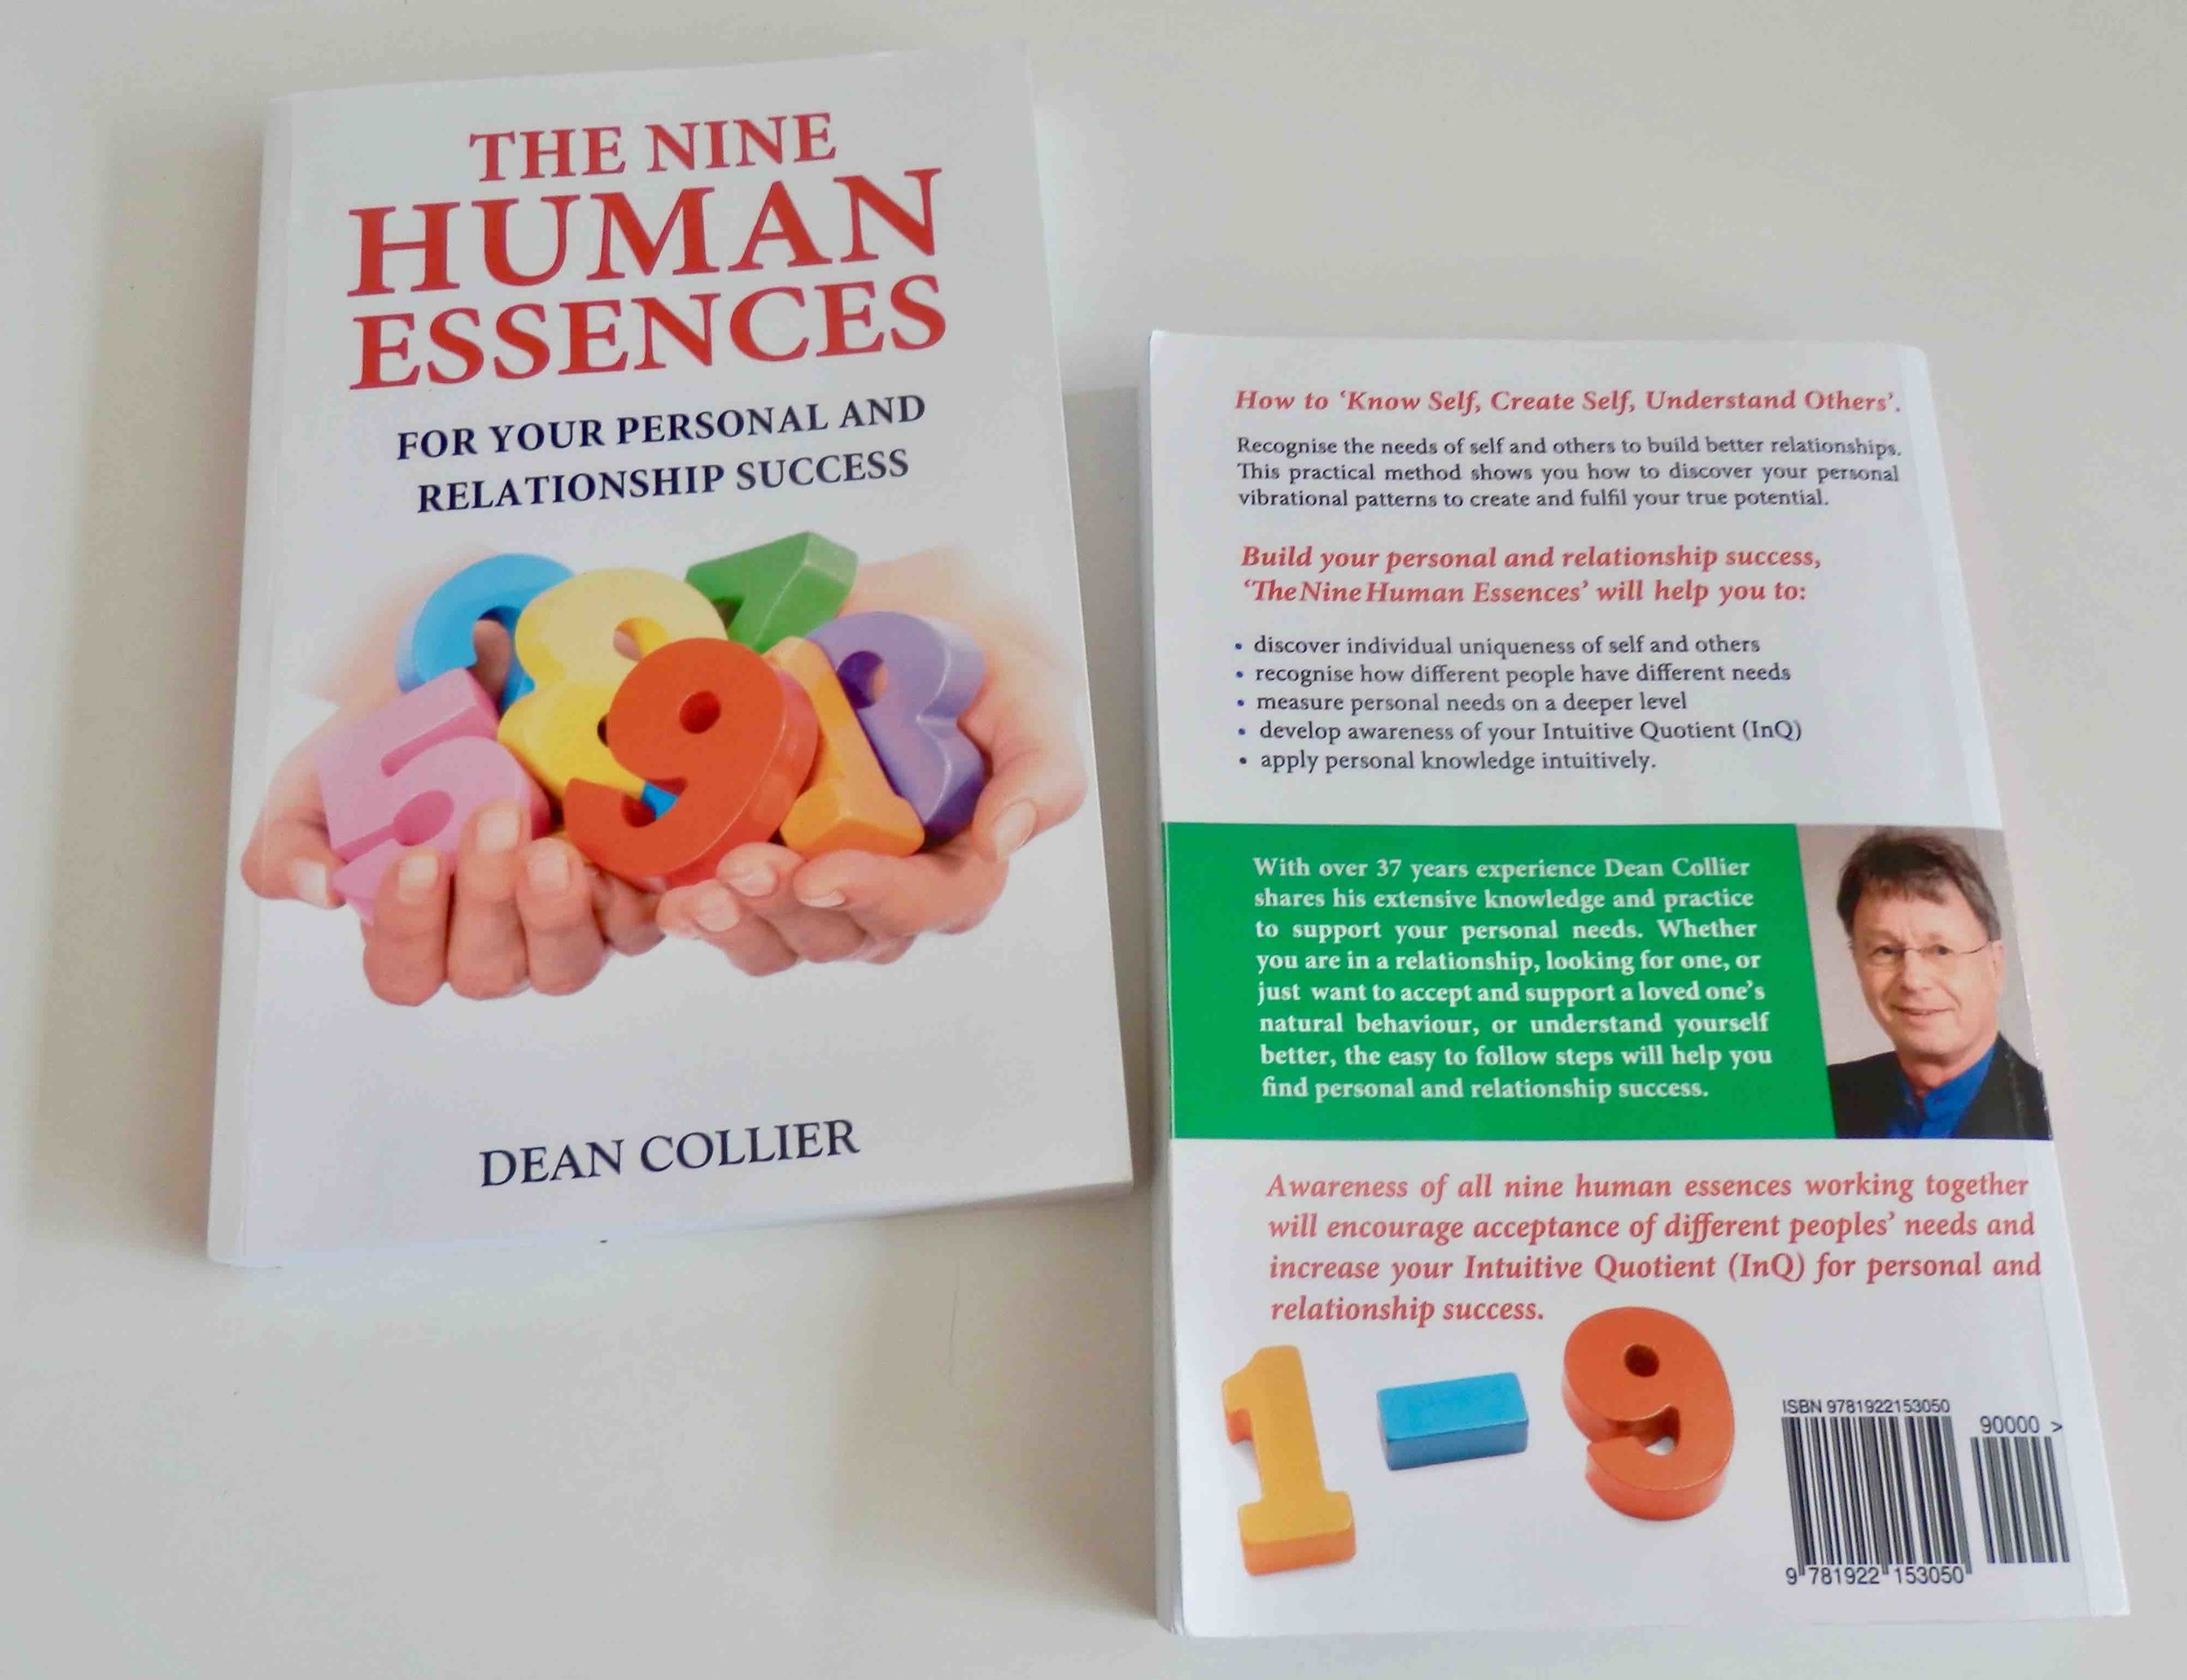 The Nine Human Essences for your Personal and Relationship Success  Buy now on Amazon (shipped from USA)  or via  PayPal  Click  Buy Now  below